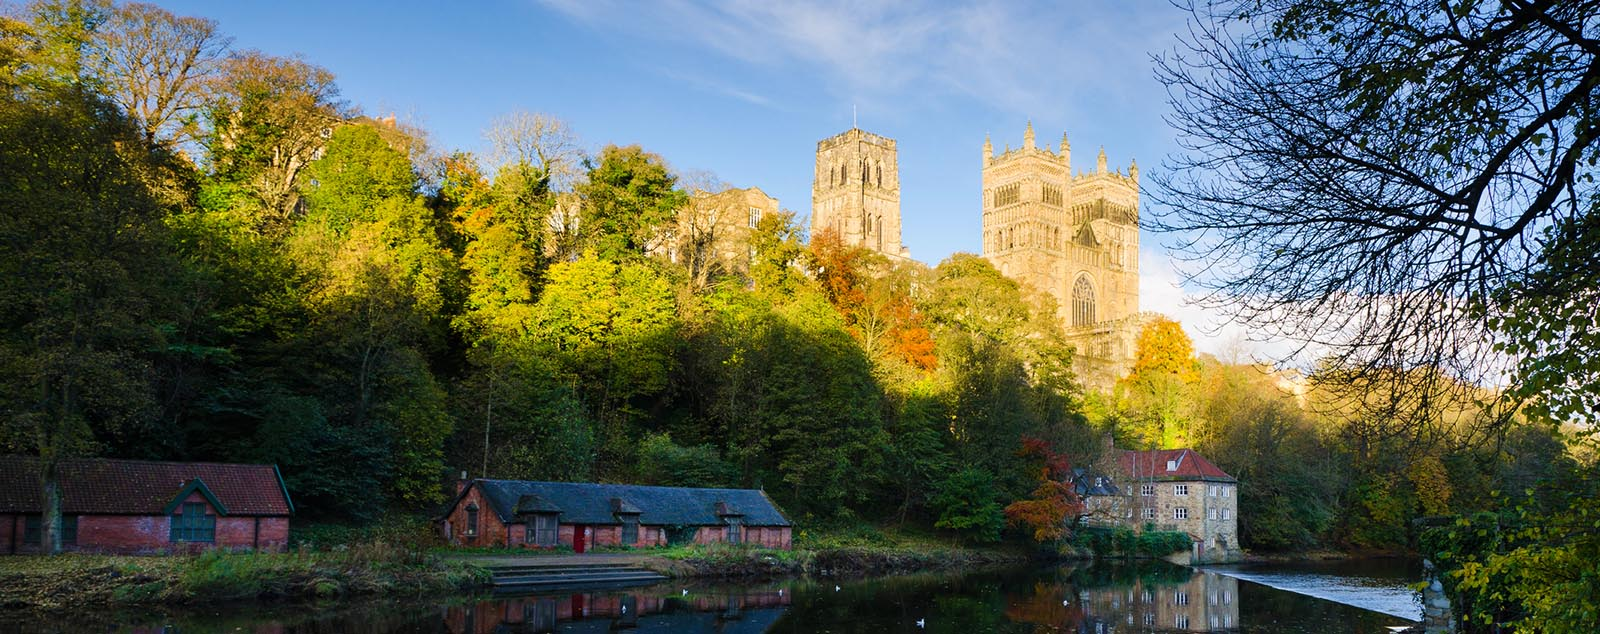 A view of Durham across still waters, the cities beautiful architecture reflected on the water.